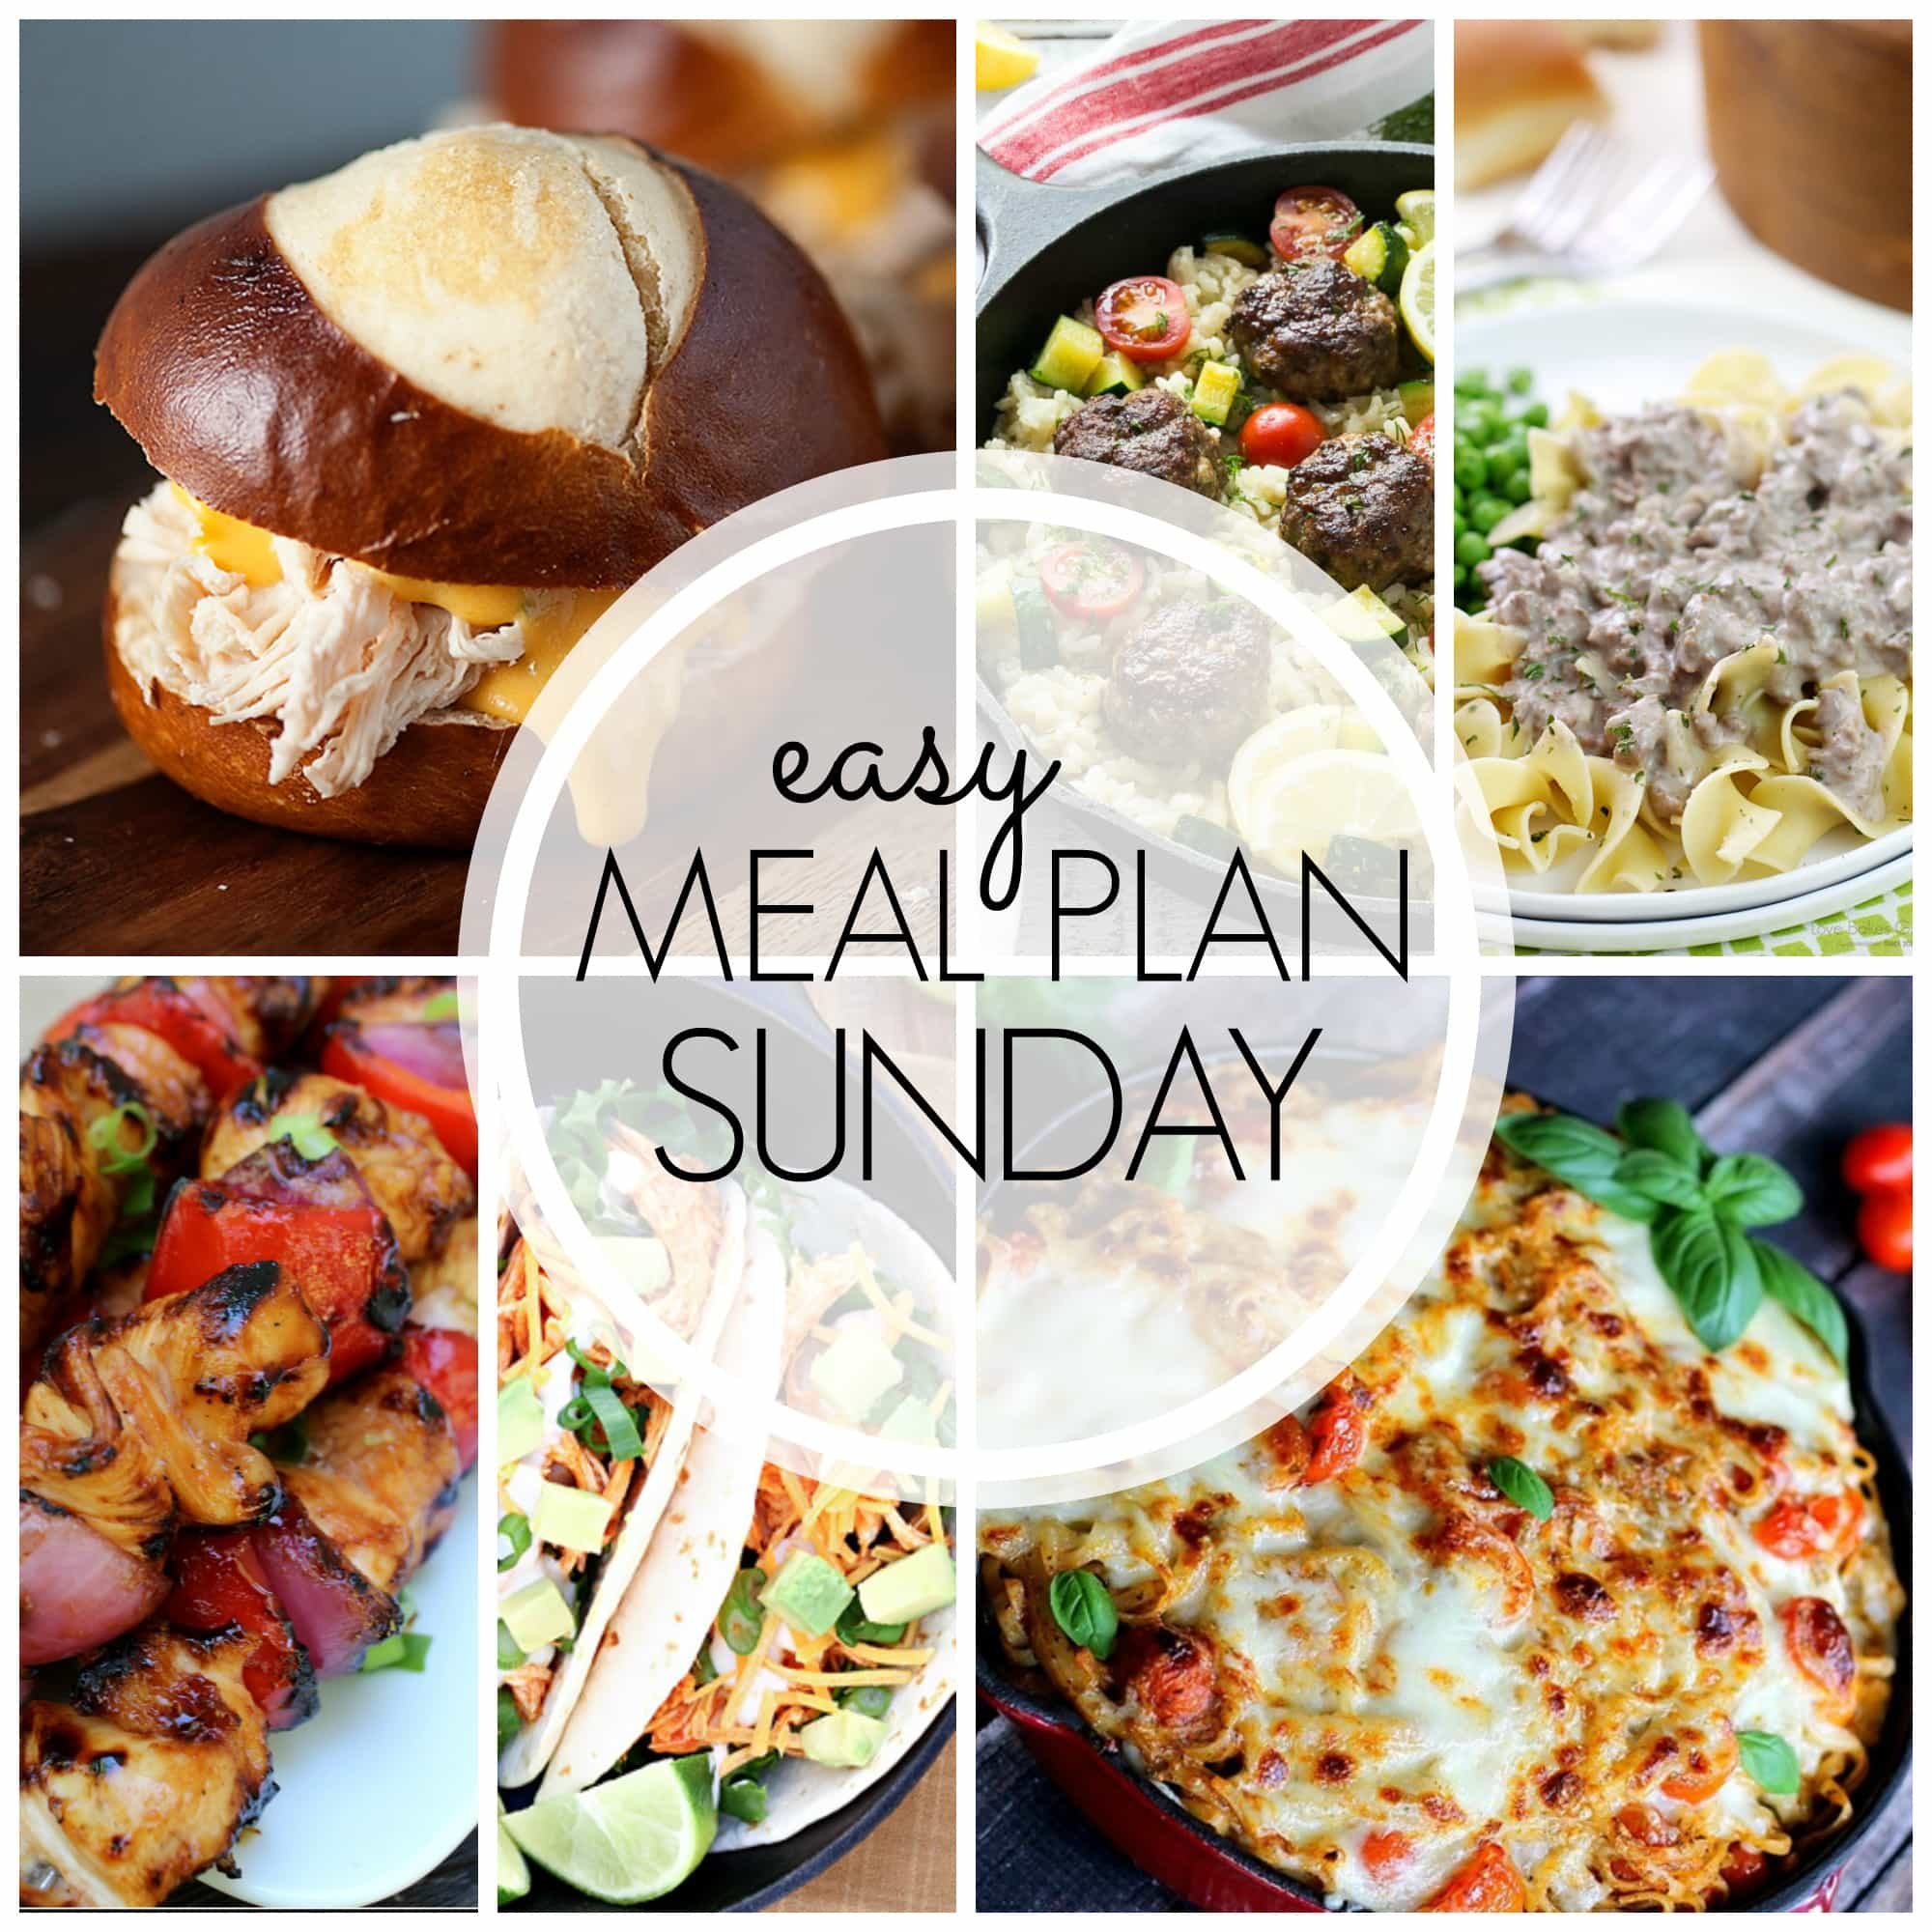 Easy weekly meal plan with 6 dinners, 1 breakfast, and 2 desserts.